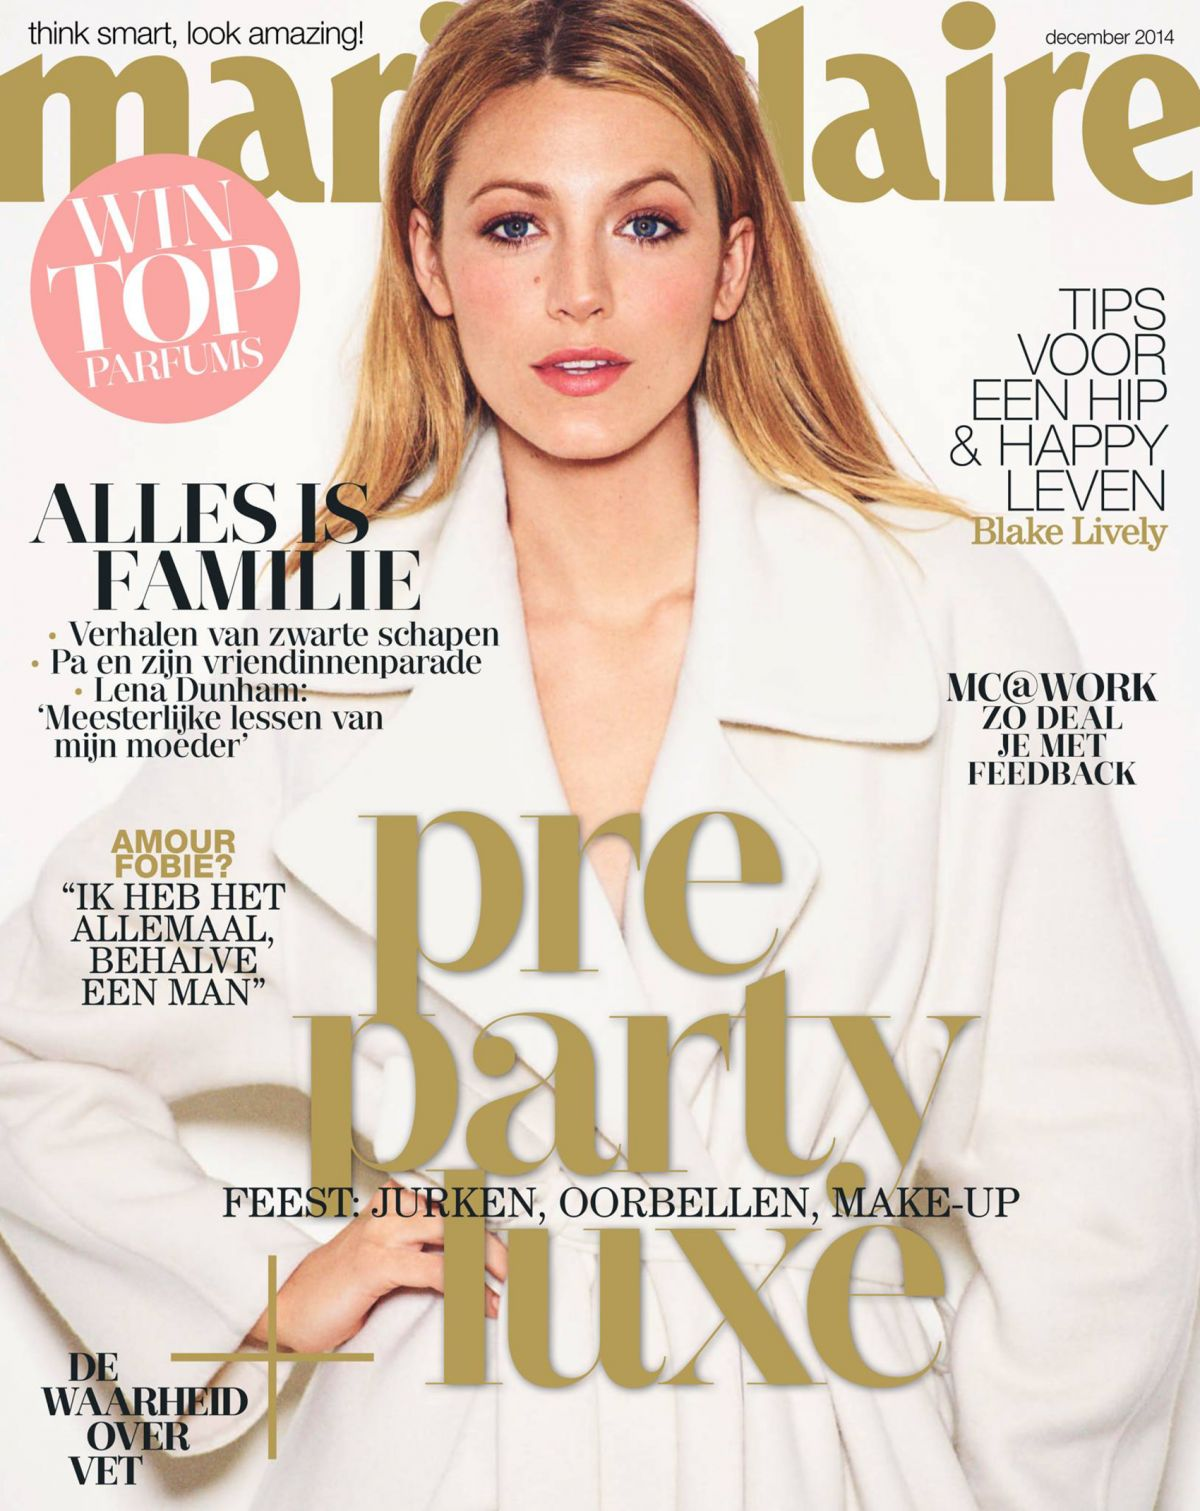 BLAKE LIVELY on the Cover of Marie Claire Magazine, Netherlands December 2014 Issue